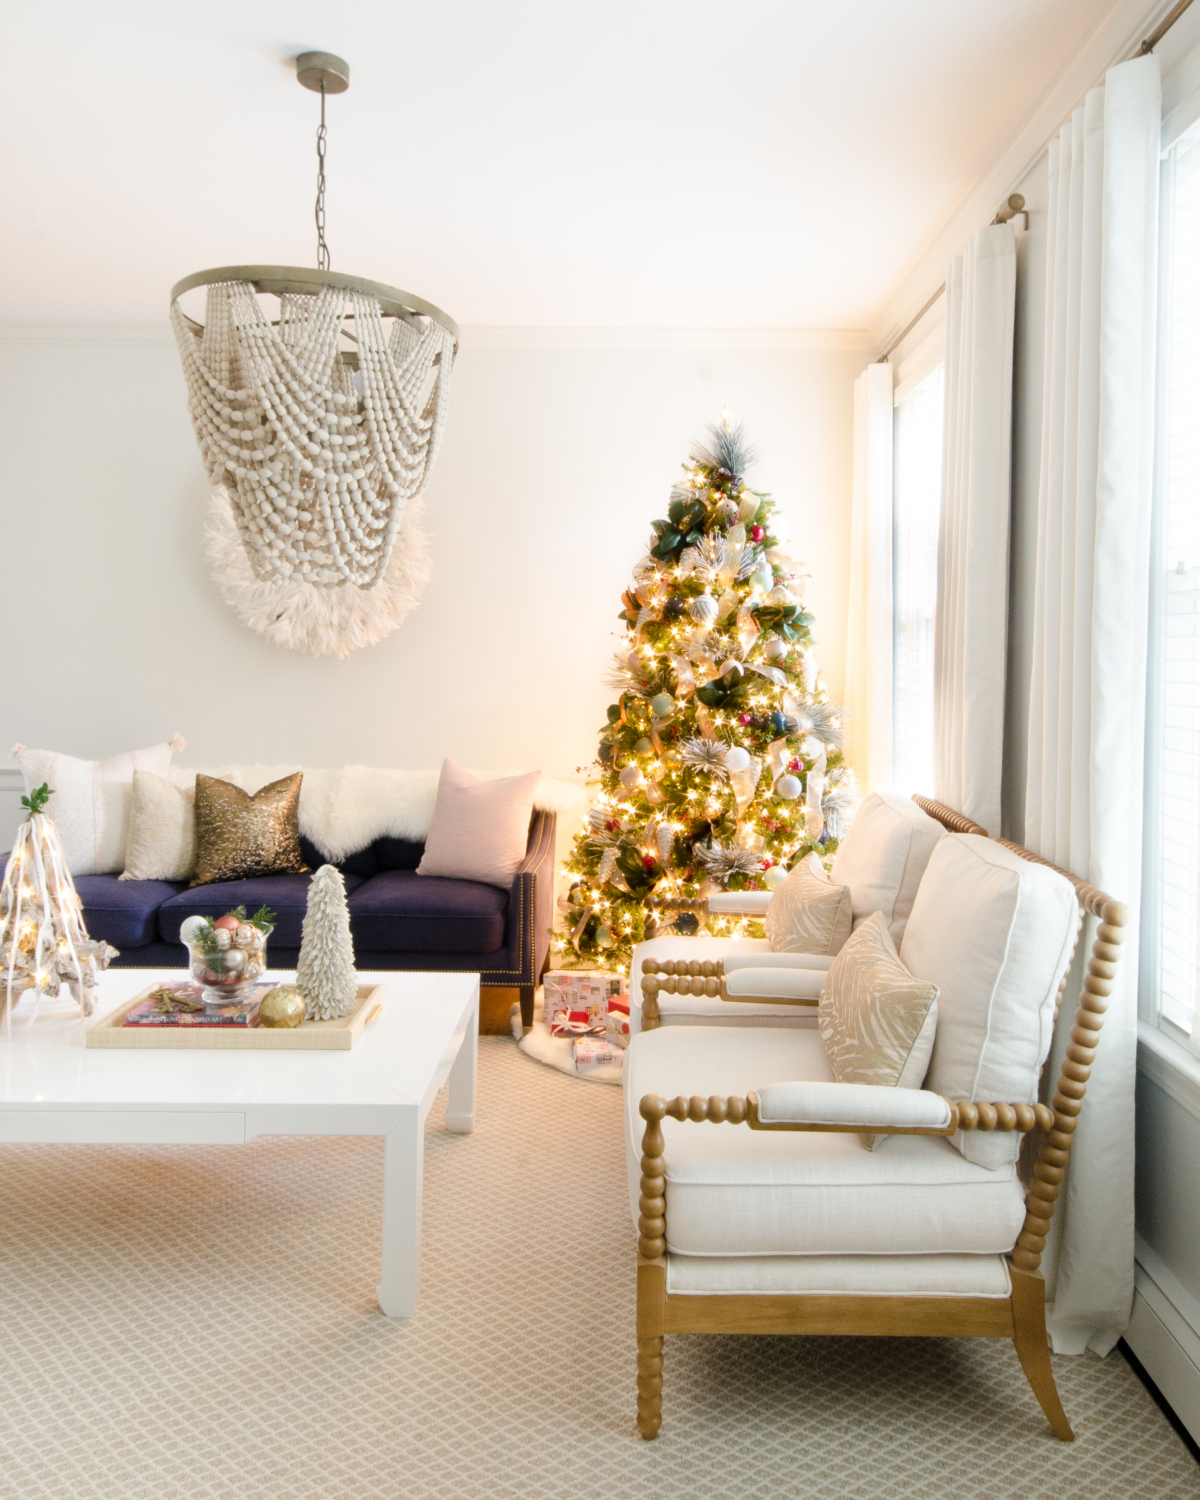 Neutral Christmas living room with white, blush, and cream